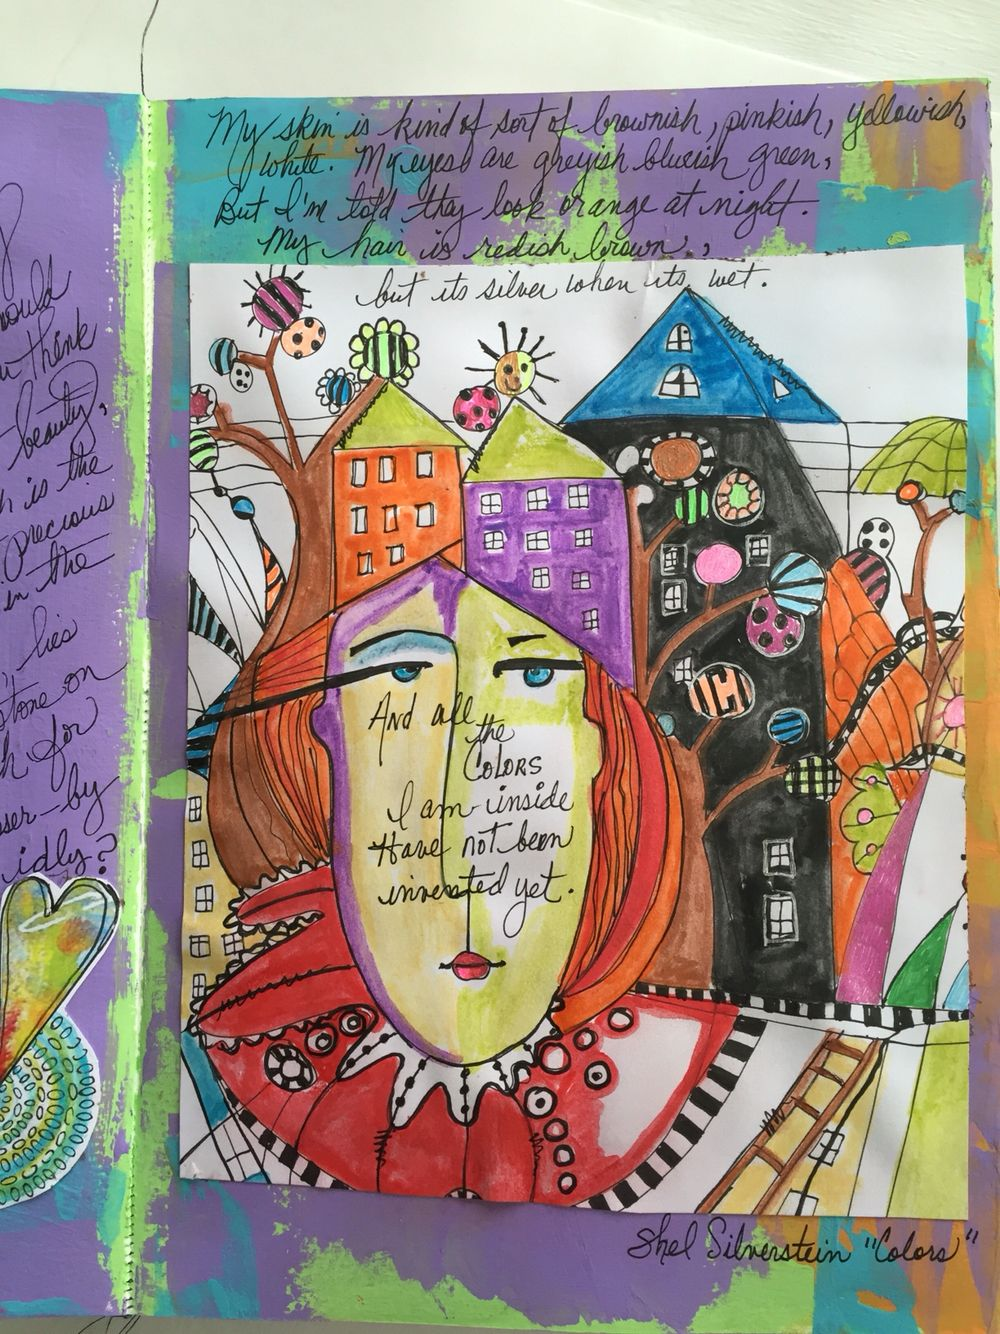 Coloring journal page by Kim Collister.